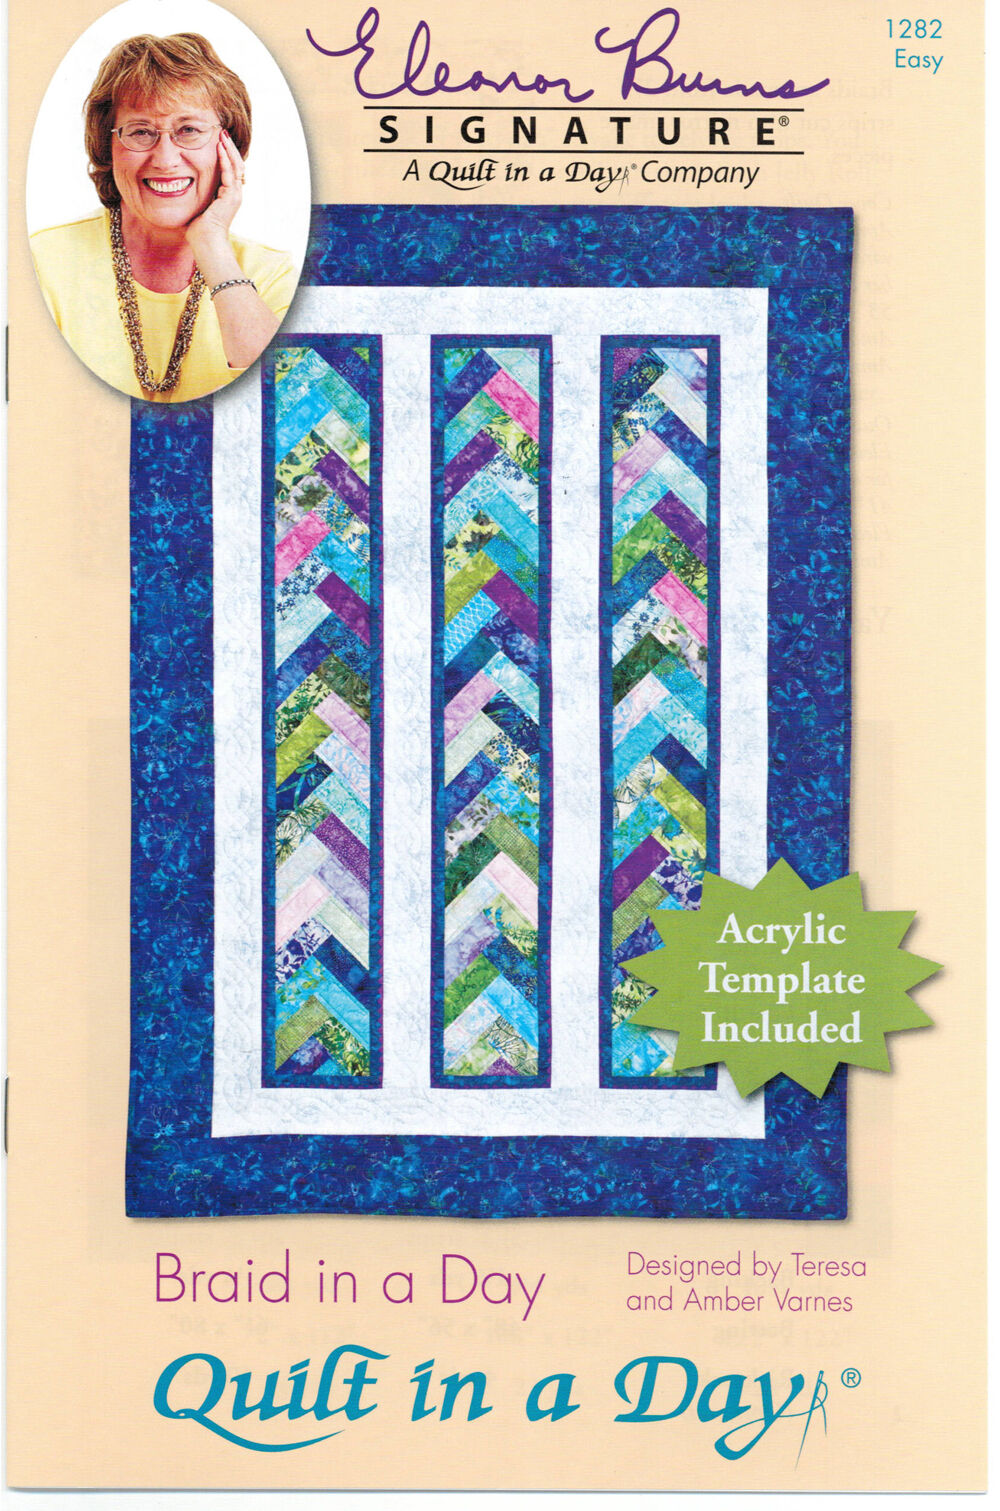 Braid In A Day Quilt Pattern 1284 By Quilt In A Day, Acrylic Template Included.